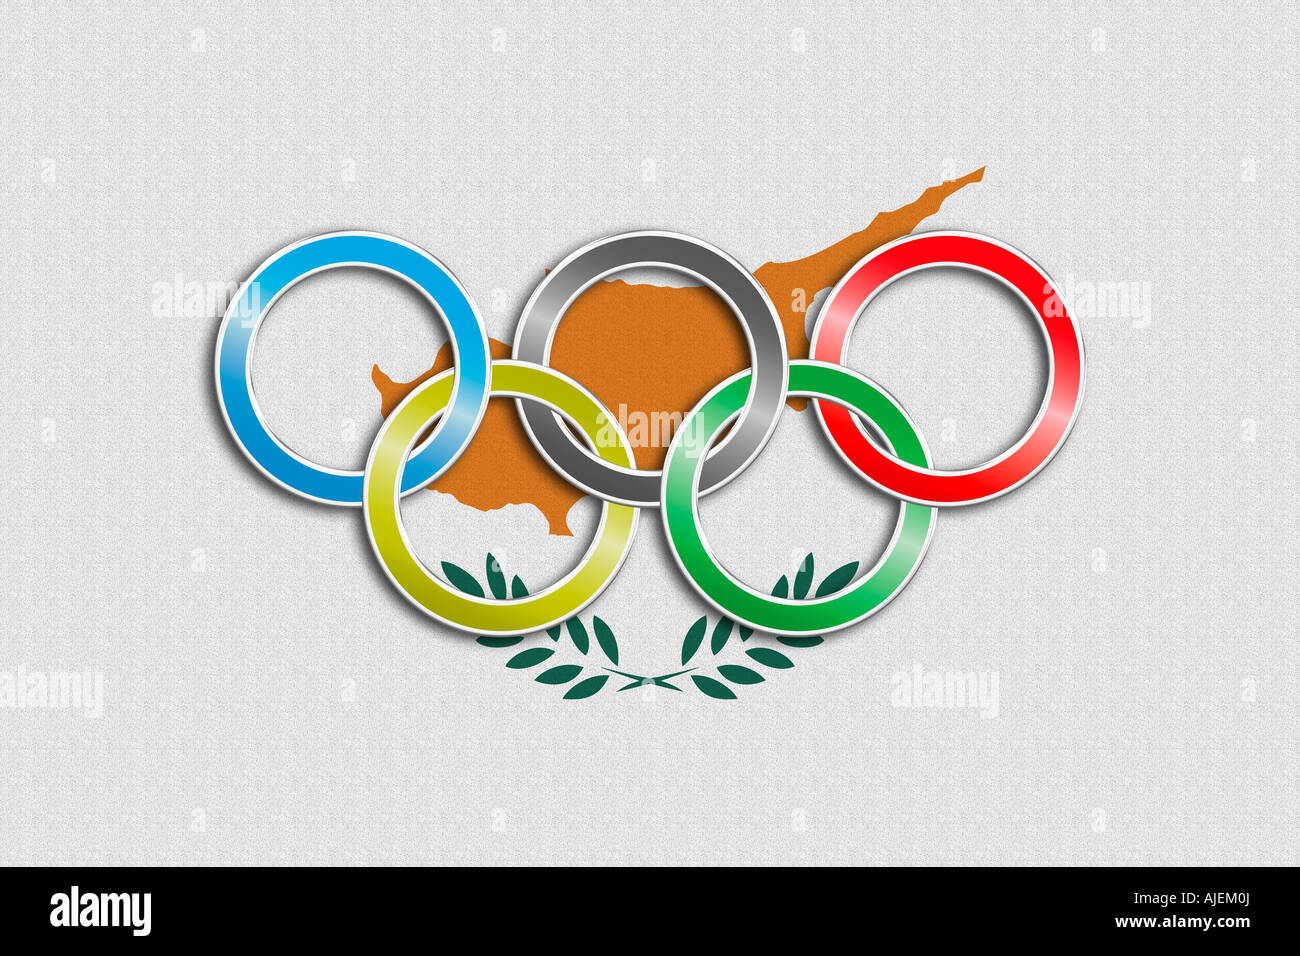 Flag of Cyprus with olympic symbol - Stock Image